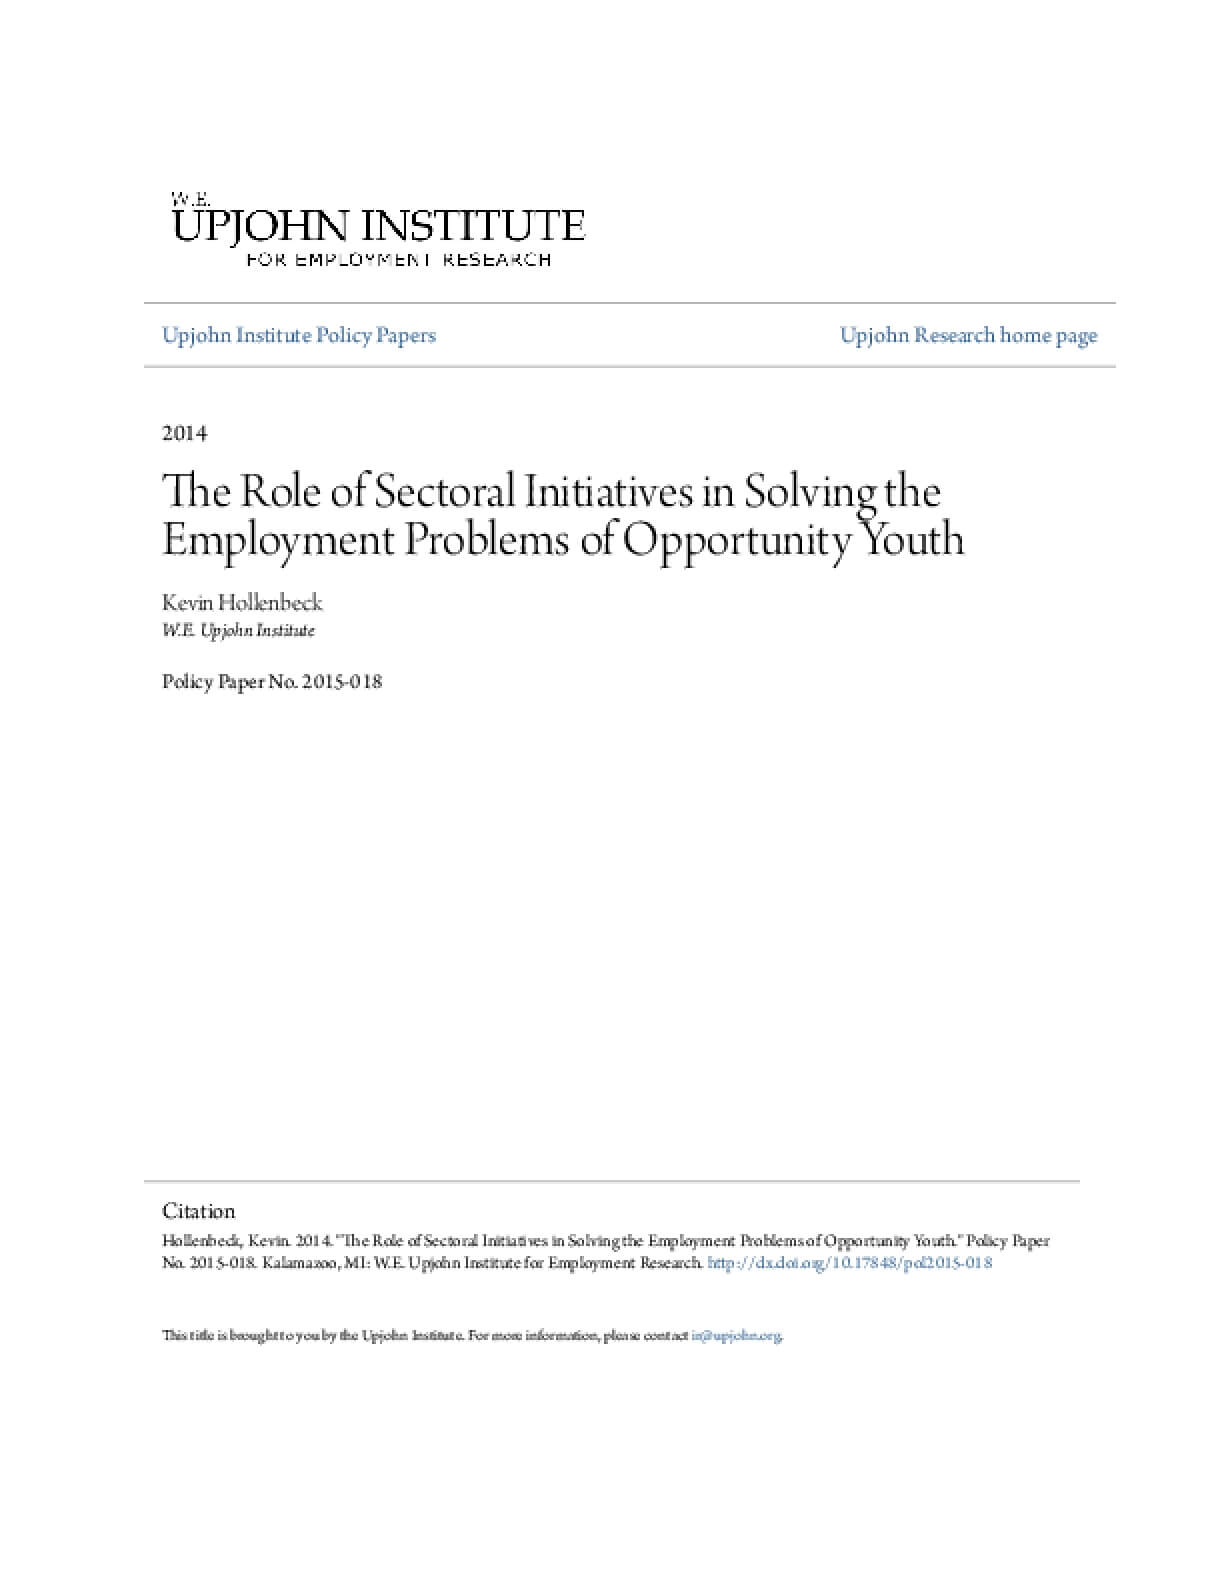 The Role of Sectoral Initiatives in Solving the Employment Problems of Opportunity Youth